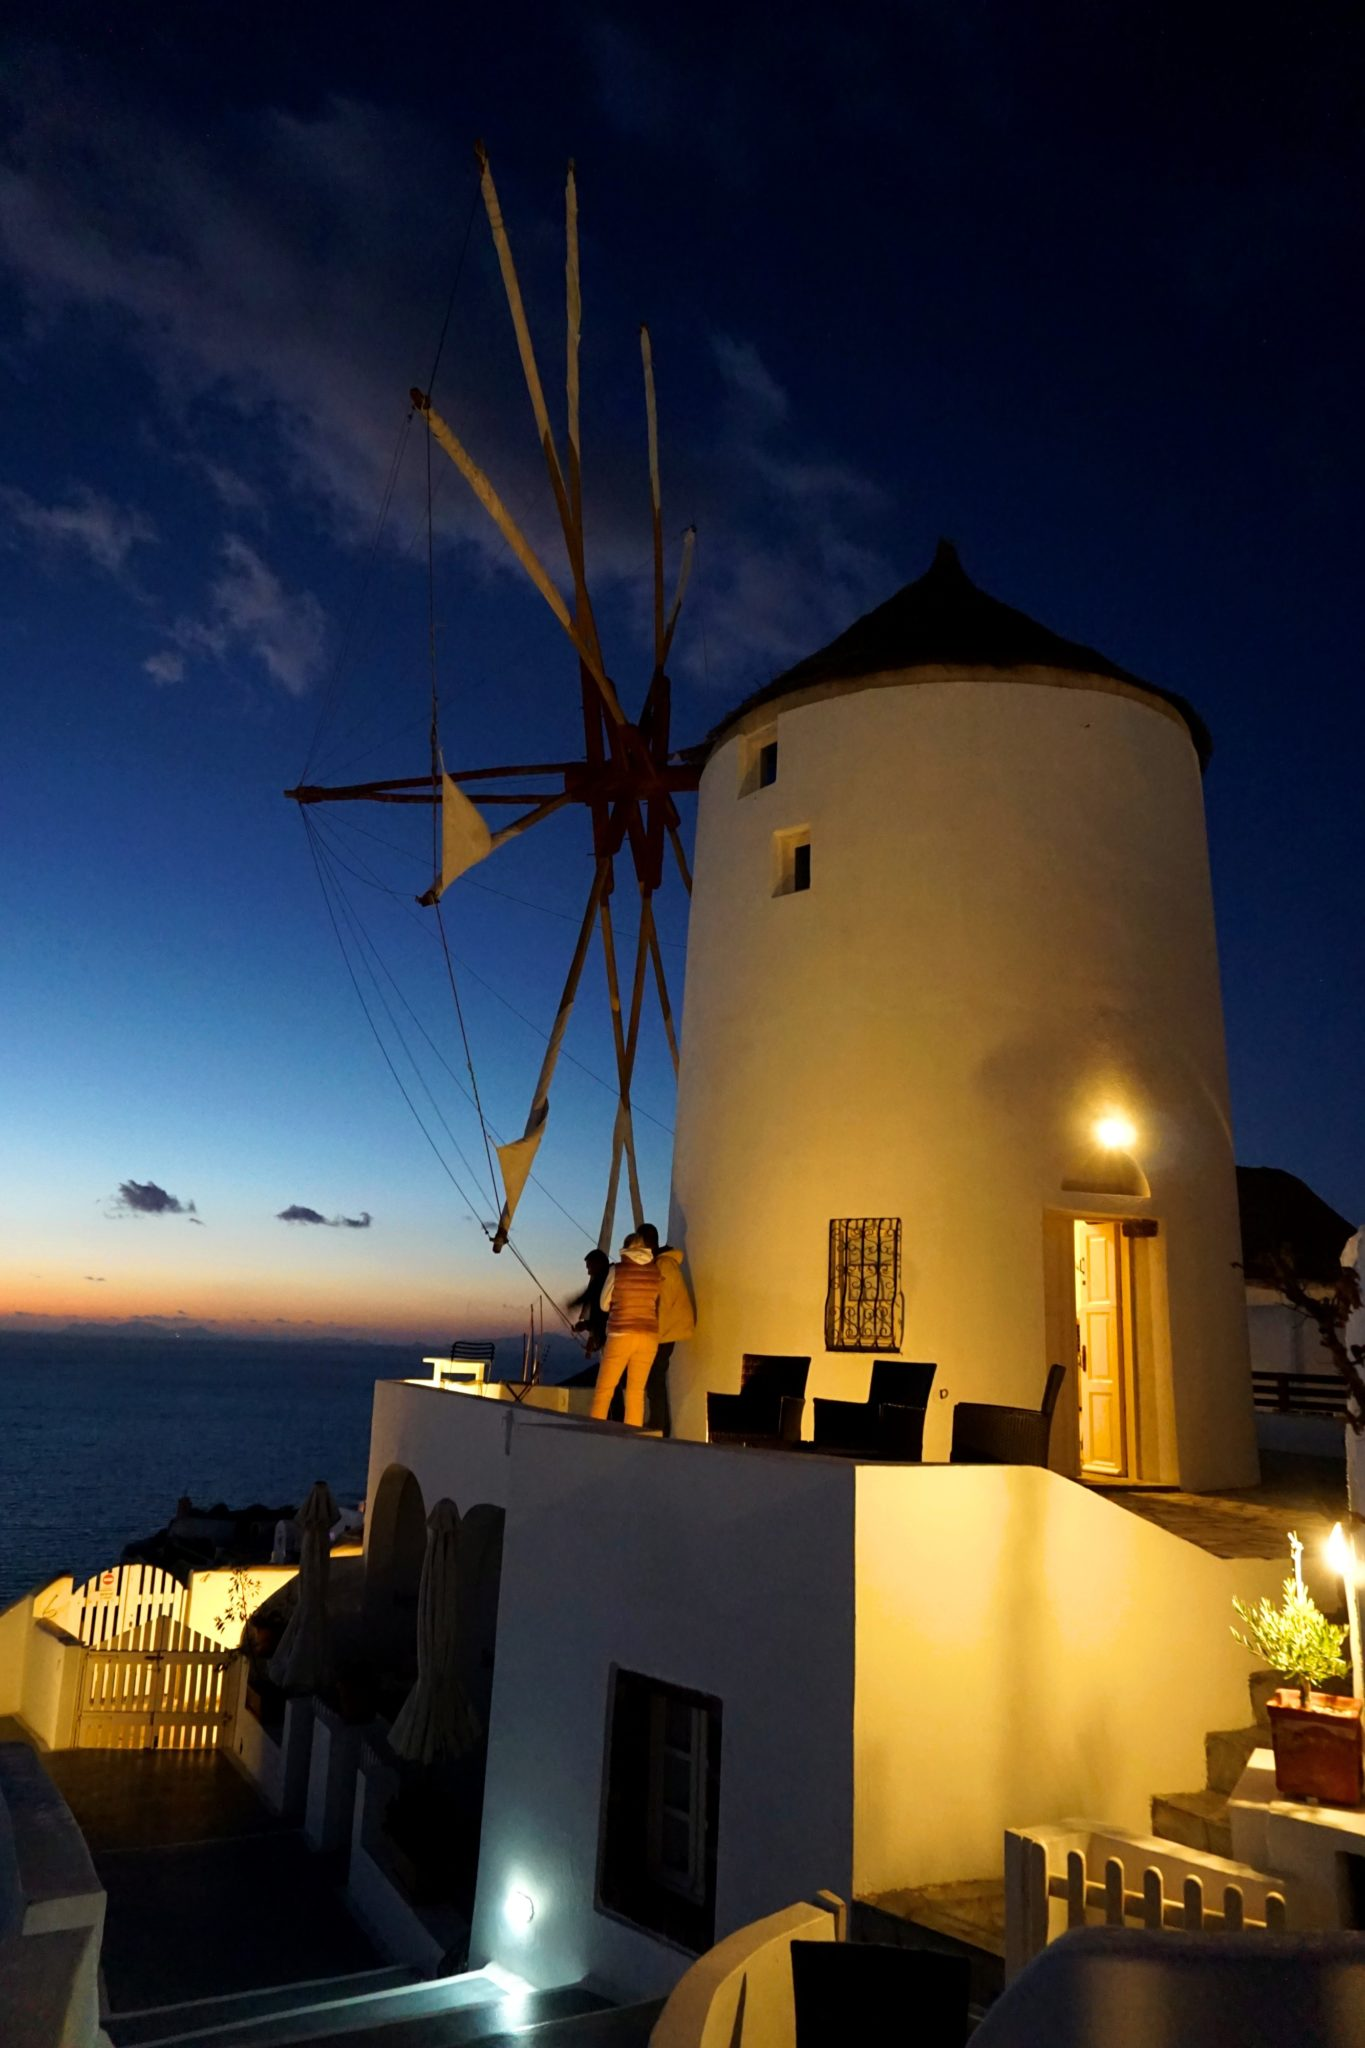 One of the famous Oia windmills taken during blue hour.